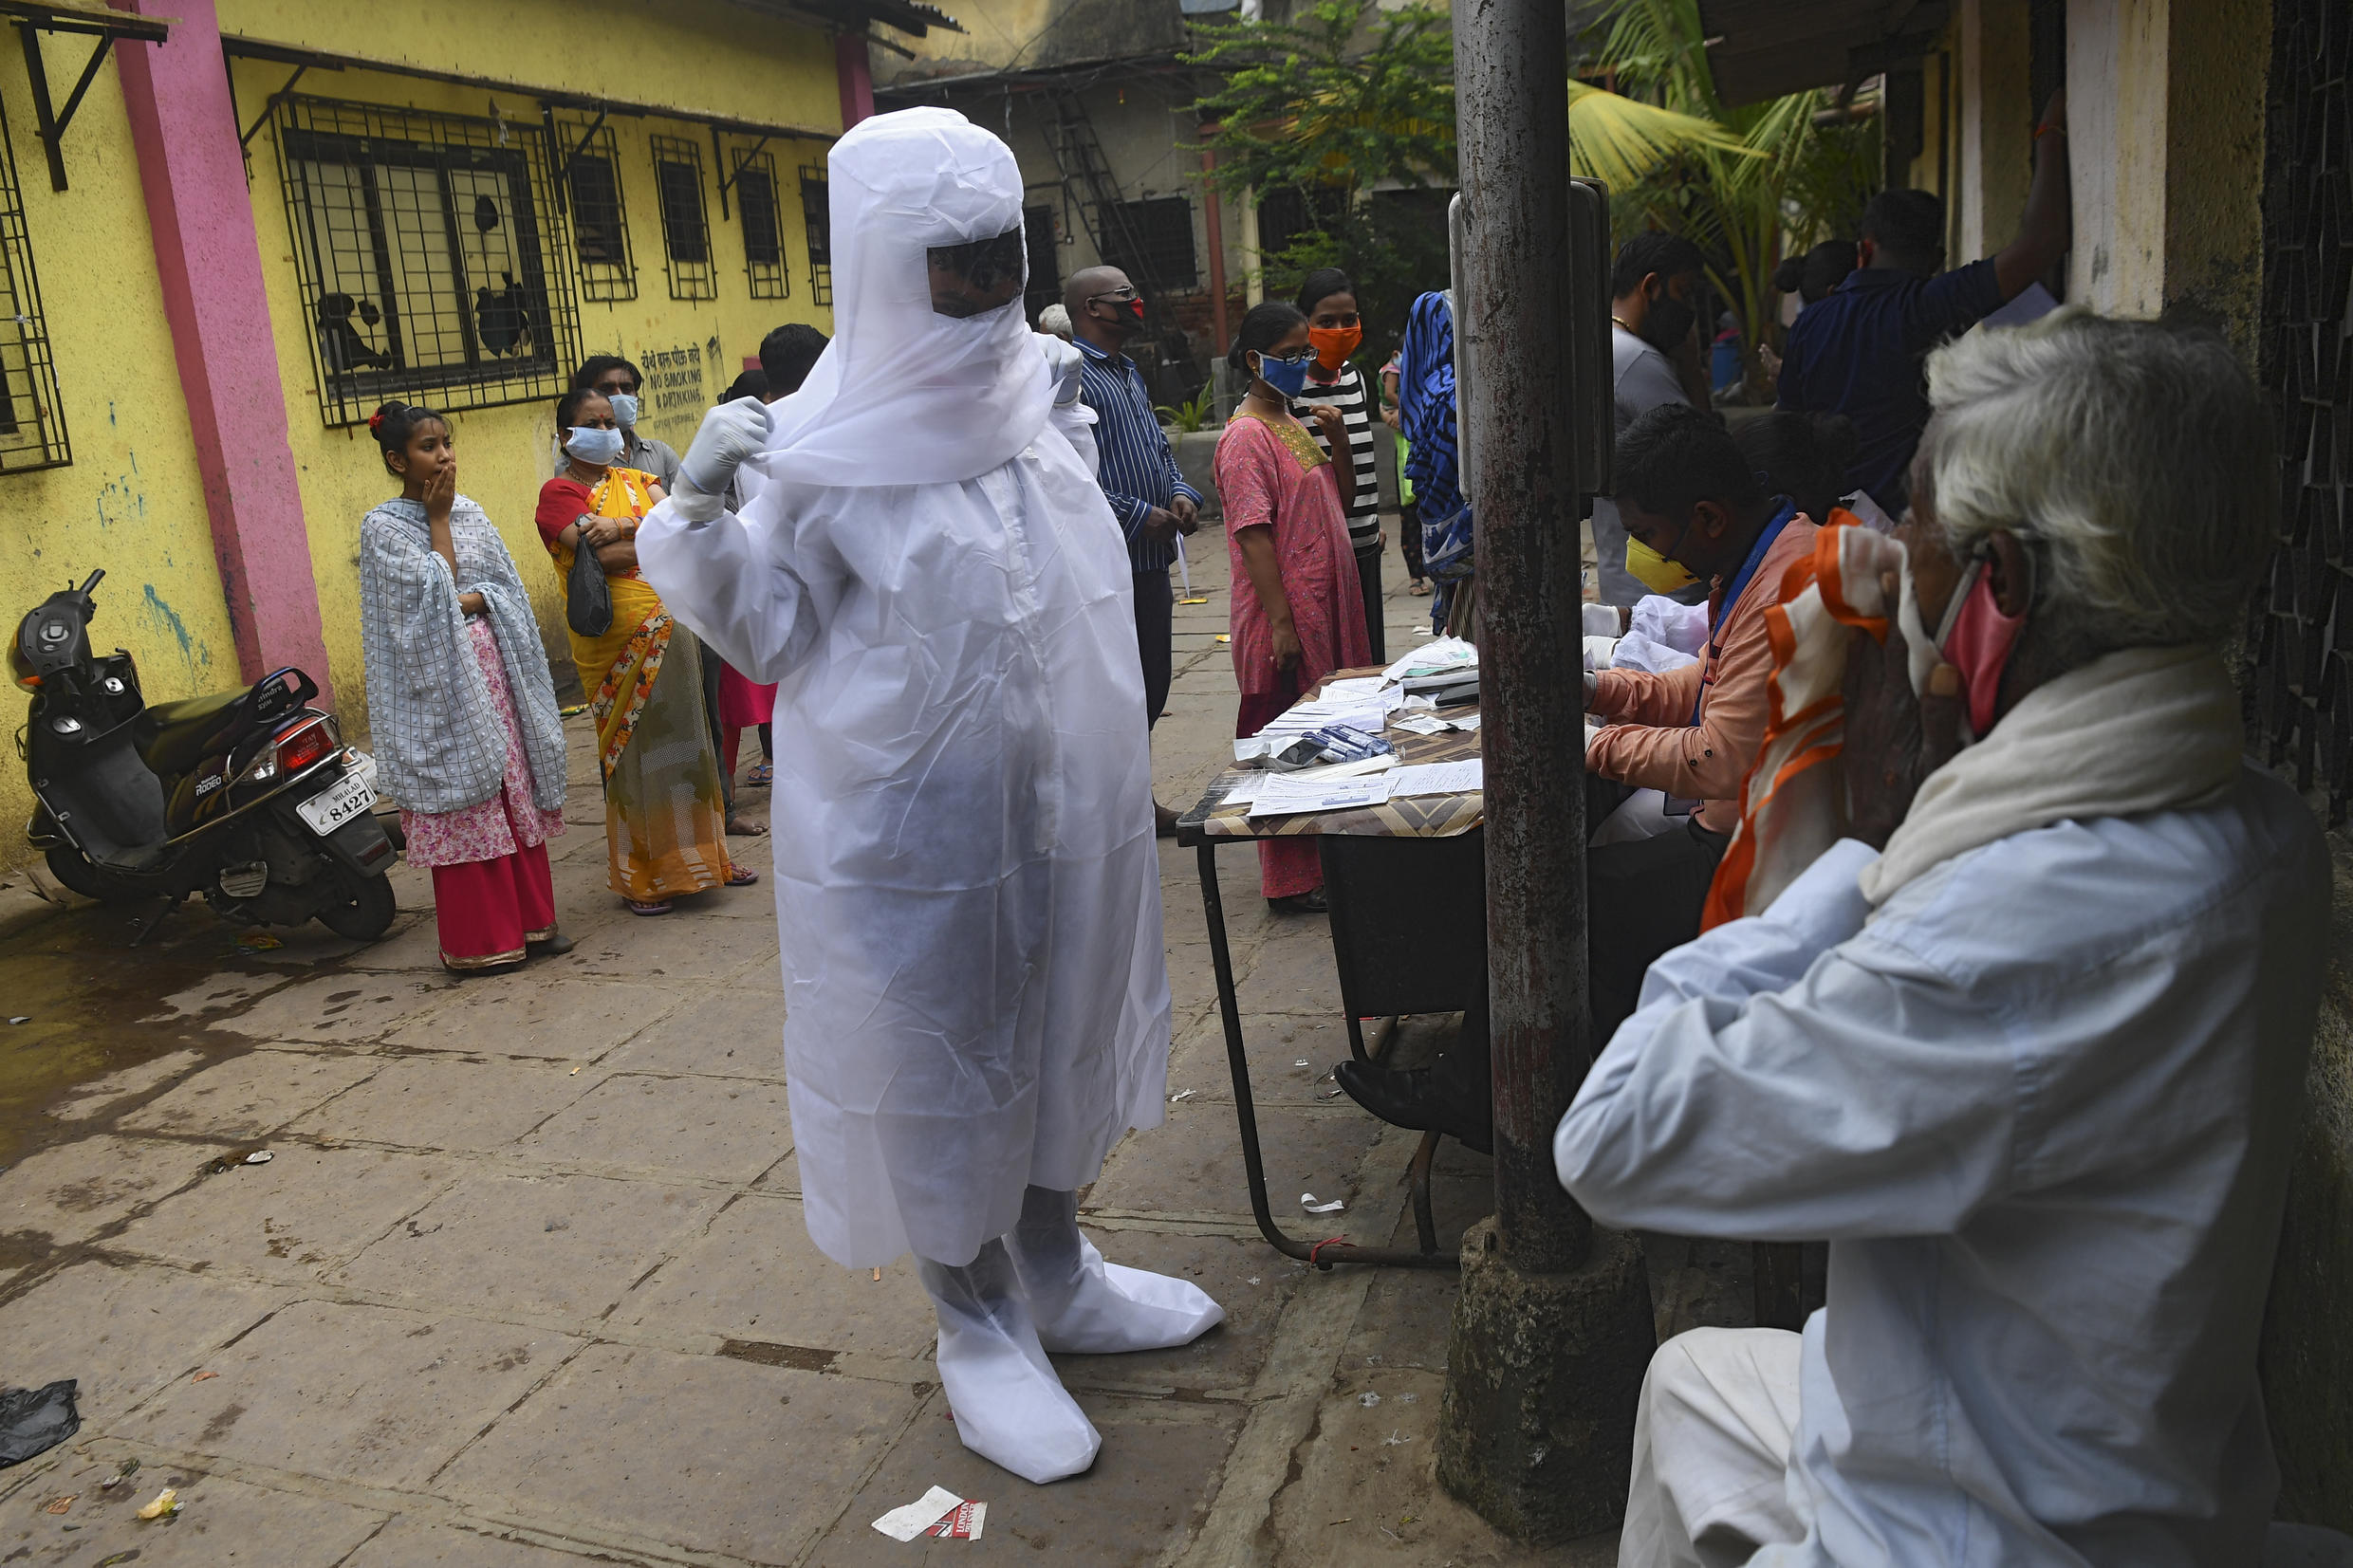 India's economy has been devastated by the coronavirus epidemic, but the government has announced loan plans.